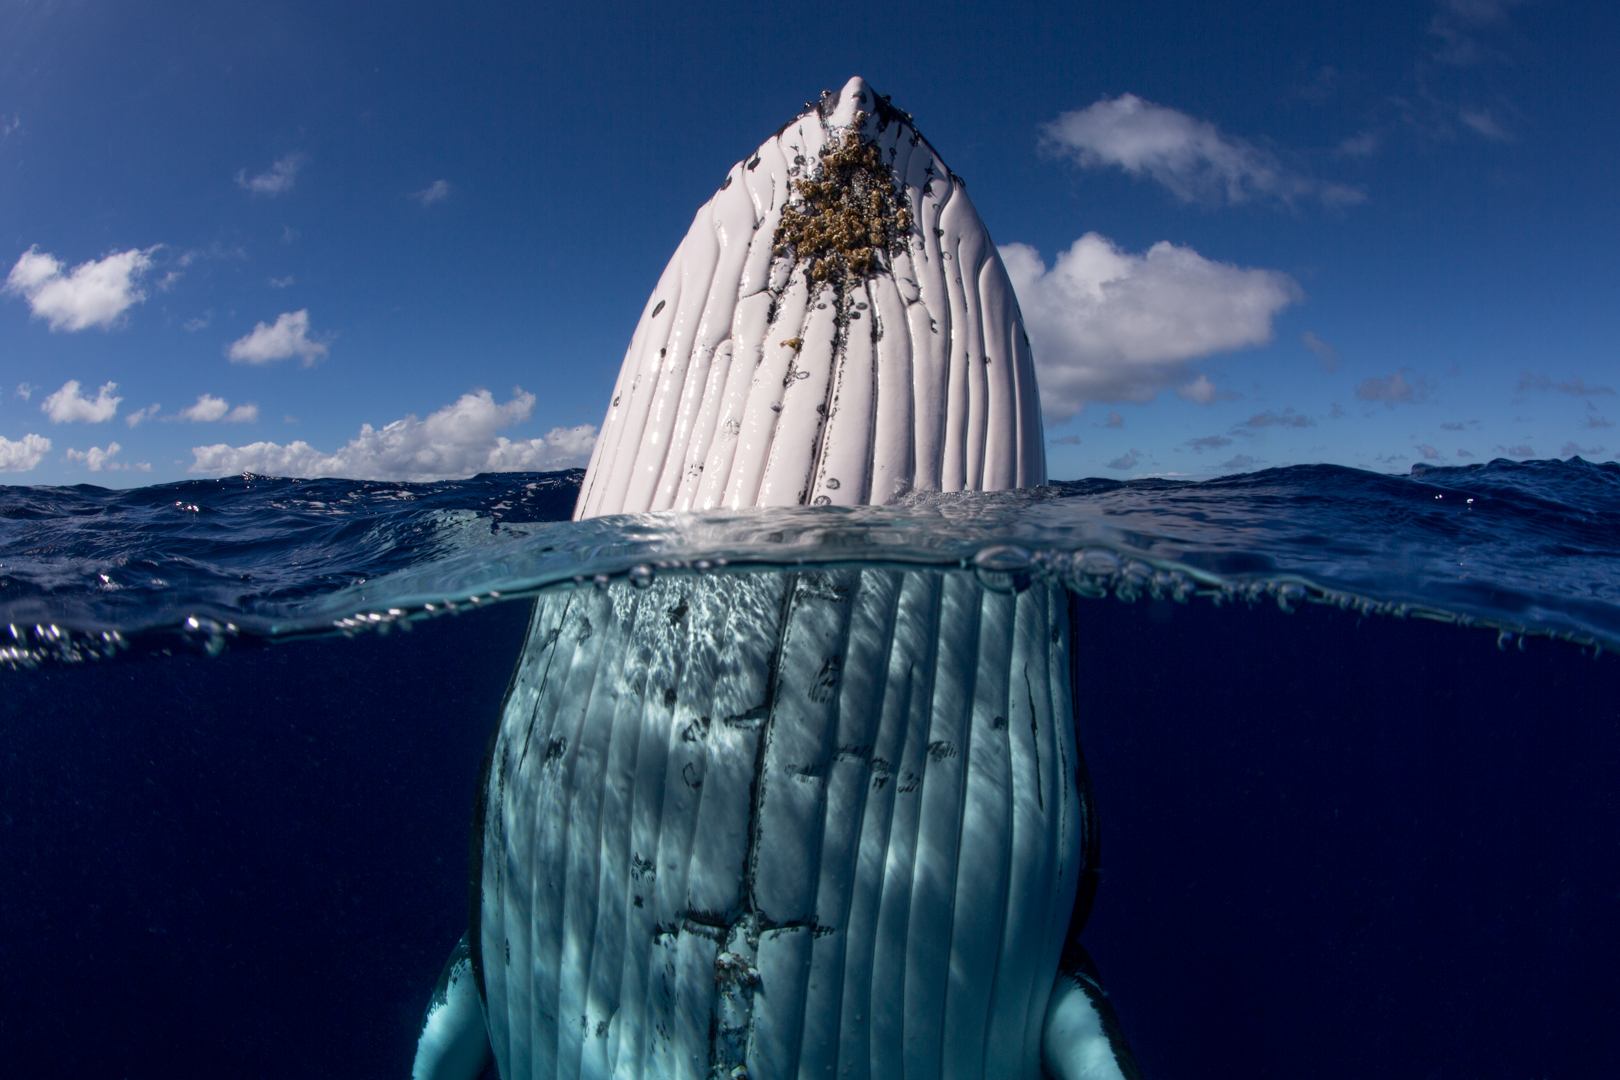 A humpback whale over and under the water, spy-hopping, photographed by Scott Portelli